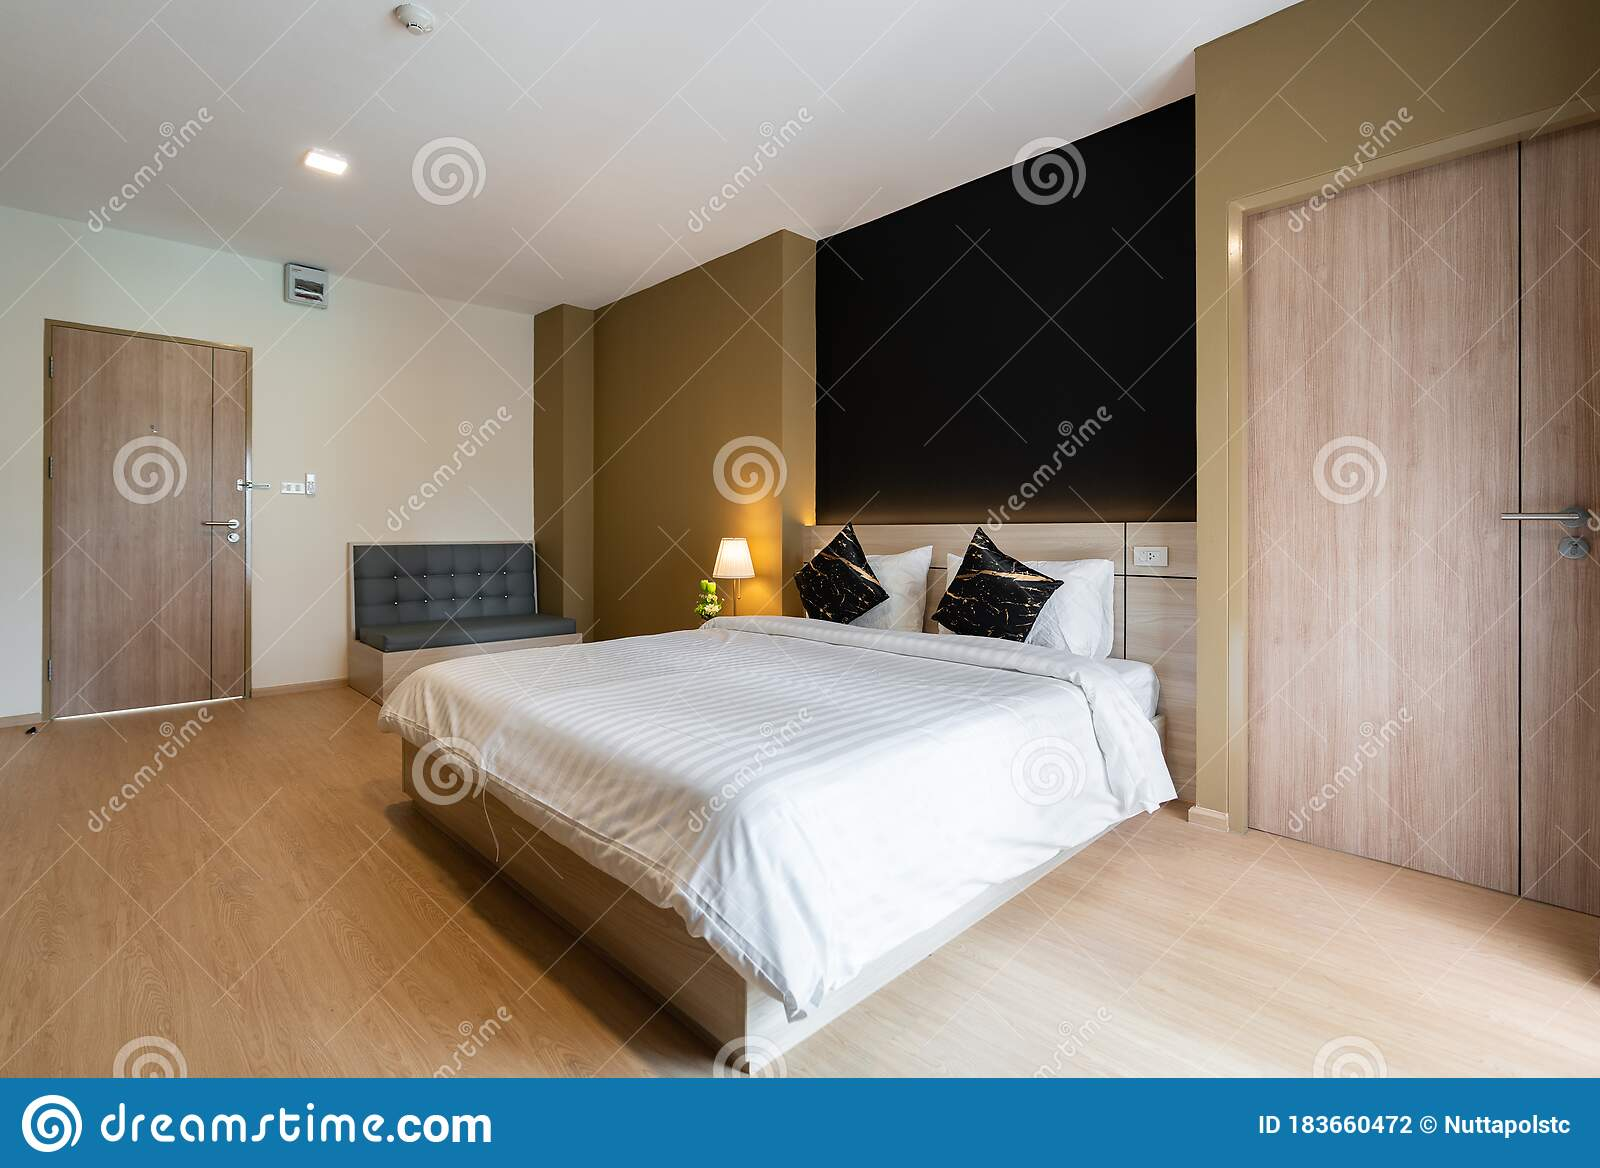 Stylish Bedroom Corner With Wooden Headboard And Bed With Soft Pillows Setting With Navy Blue And Yellow Painted Wall On The Stock Photo Image Of Circle Navy 183660472